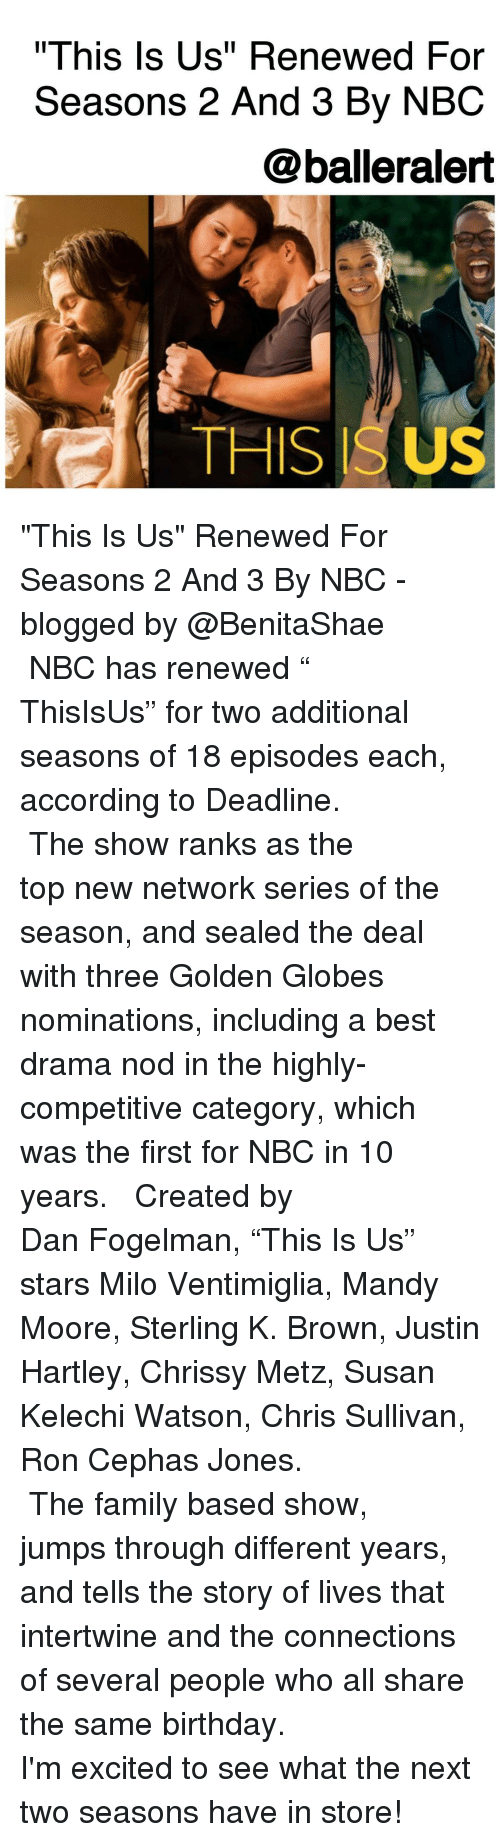 "Golden Globes, Memes, and Seal: ""This Is Us"" Renewed For  Seasons 2 And 3 By NBC  @balleralert  THIS ISUS ""This Is Us"" Renewed For Seasons 2 And 3 By NBC -blogged by @BenitaShae ⠀⠀⠀⠀⠀⠀⠀⠀⠀ ⠀⠀⠀⠀⠀⠀⠀⠀⠀ NBC has renewed "" ThisIsUs"" for two additional seasons of 18 episodes each, according to Deadline. ⠀⠀⠀⠀⠀⠀⠀⠀⠀ ⠀⠀⠀⠀⠀⠀⠀⠀⠀ The show ranks as the top new network series of the season, and sealed the deal with three Golden Globes nominations, including a best drama nod in the highly-competitive category, which was the first for NBC in 10 years. ⠀⠀⠀⠀⠀⠀⠀⠀⠀ ⠀⠀⠀⠀⠀⠀⠀⠀⠀ Created by Dan Fogelman, ""This Is Us"" stars Milo Ventimiglia, Mandy Moore, Sterling K. Brown, Justin Hartley, Chrissy Metz, Susan Kelechi Watson, Chris Sullivan, Ron Cephas Jones. ⠀⠀⠀⠀⠀⠀⠀⠀⠀ ⠀⠀⠀⠀⠀⠀⠀⠀⠀ The family based show, jumps through different years, and tells the story of lives that intertwine and the connections of several people who all share the same birthday. ⠀⠀⠀⠀⠀⠀⠀⠀⠀ ⠀⠀⠀⠀⠀⠀⠀⠀⠀ I'm excited to see what the next two seasons have in store!"